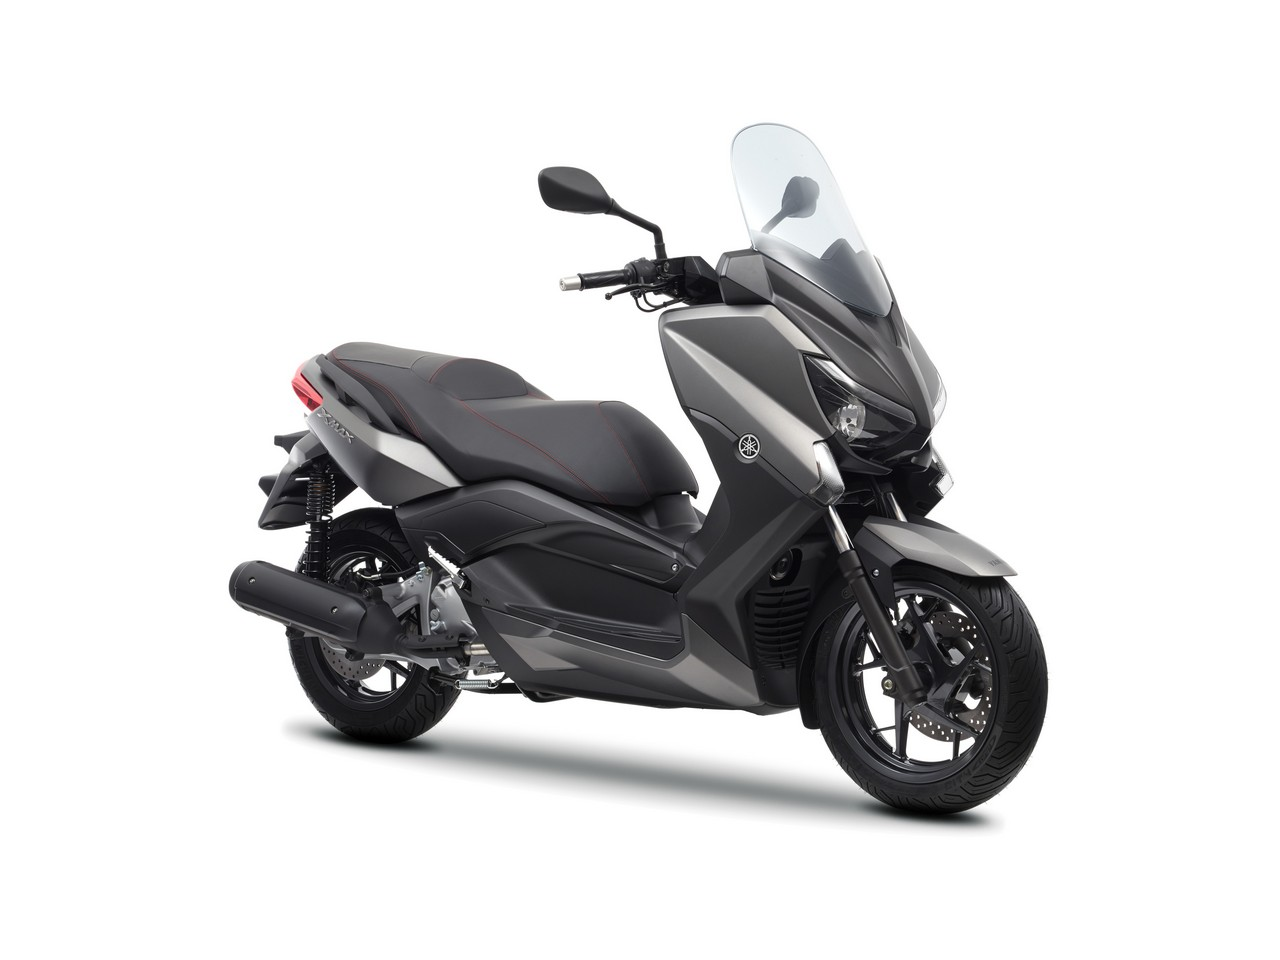 yamaha xmax 125 this variant may be launched in indonesia tmc motonews. Black Bedroom Furniture Sets. Home Design Ideas